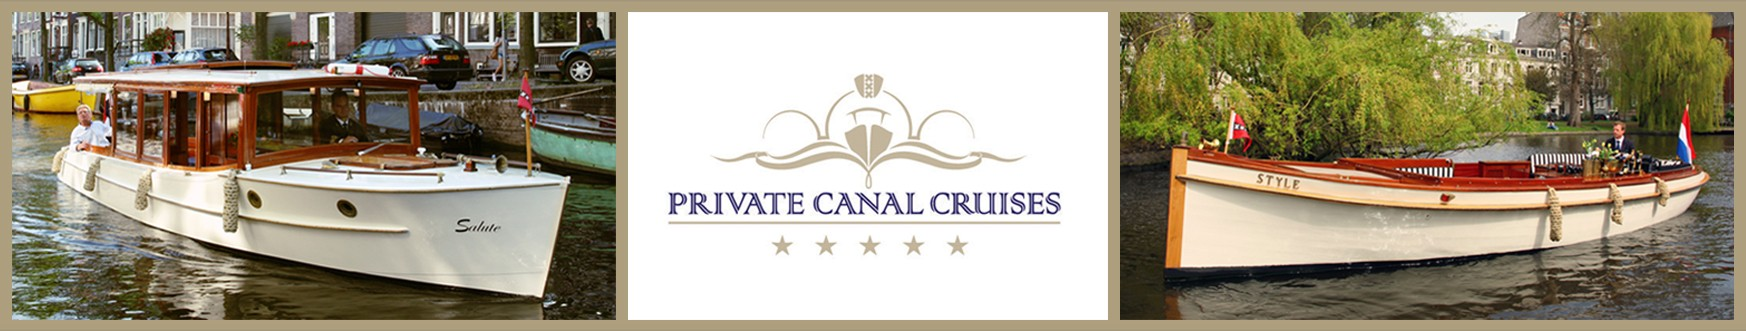 Private Canal Cruises